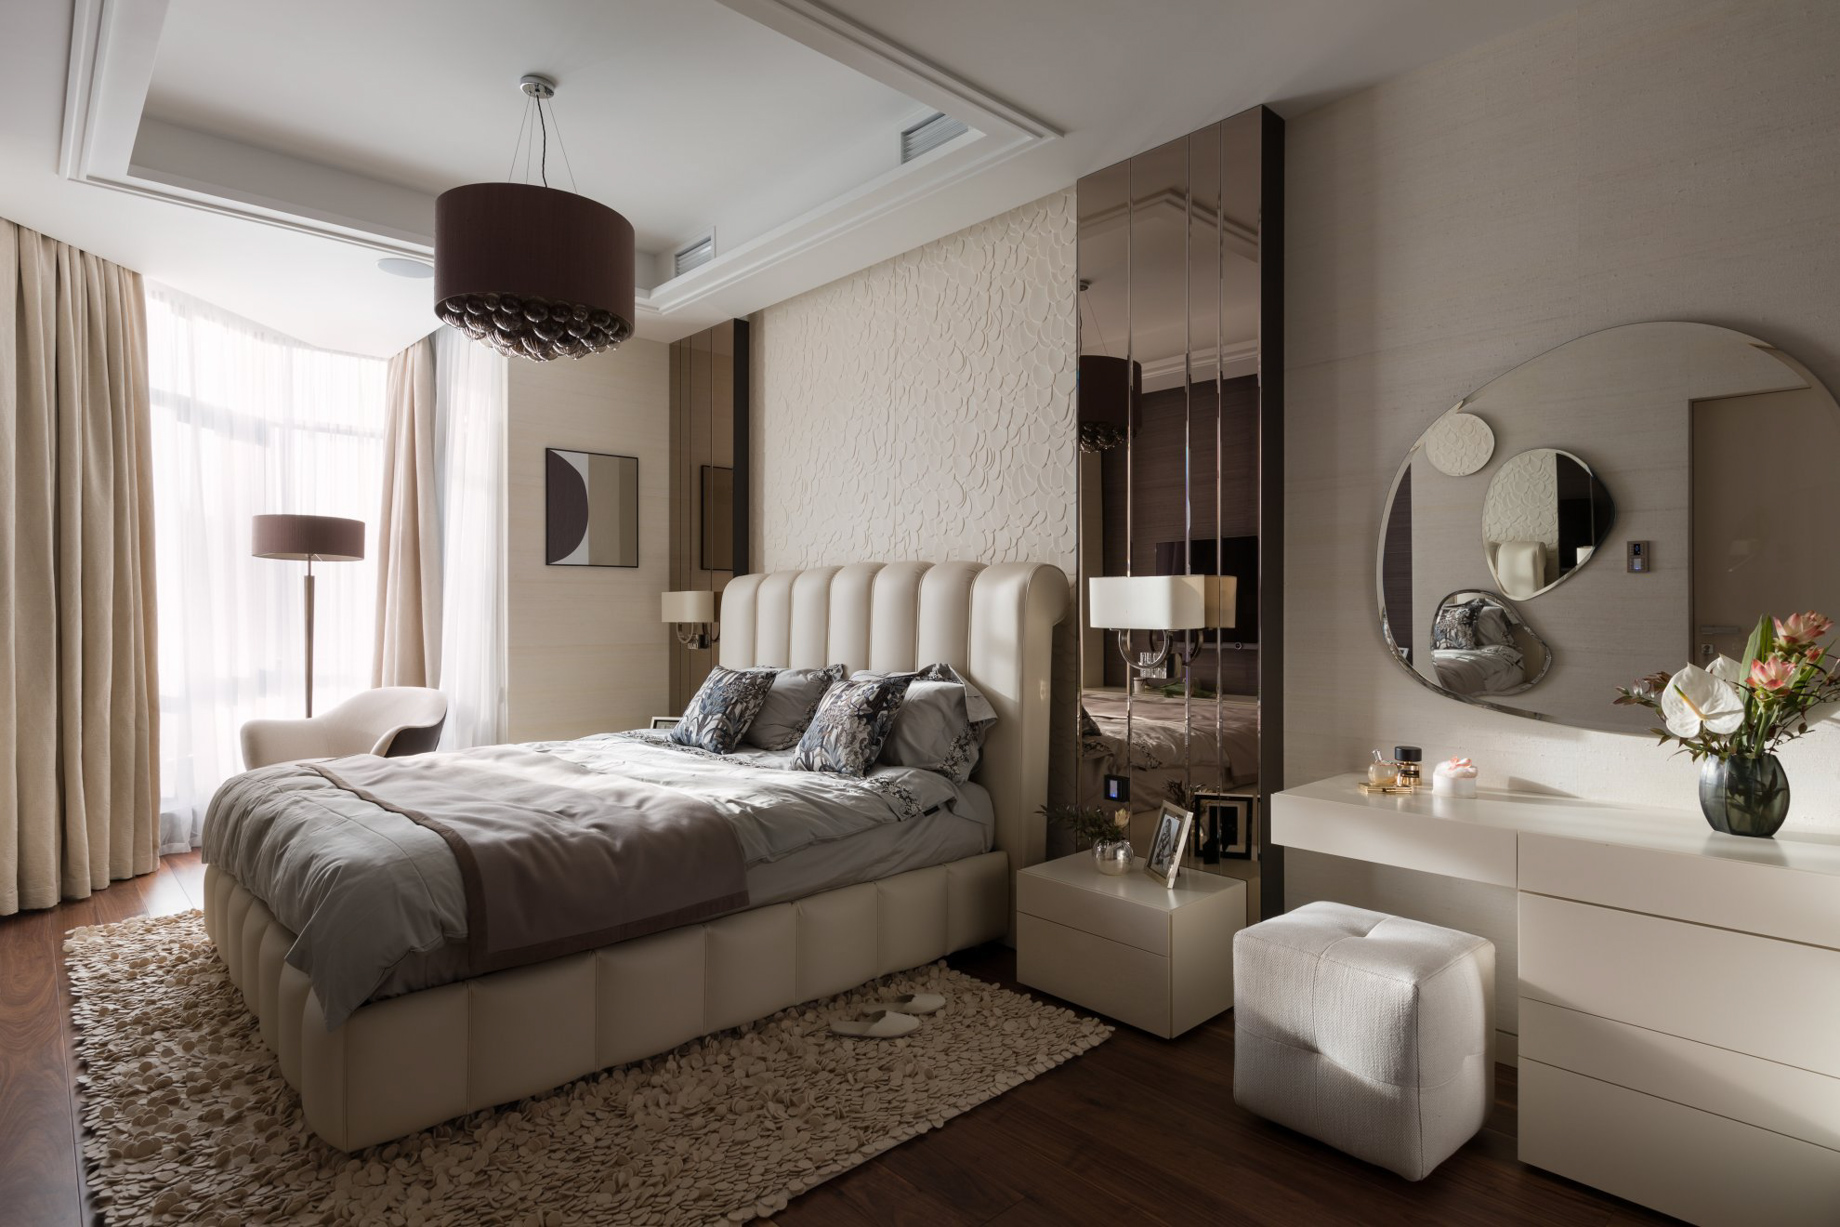 Pecher SKY Apartment Interior Design Kiev, Ukraine – Nataly Bolshakova